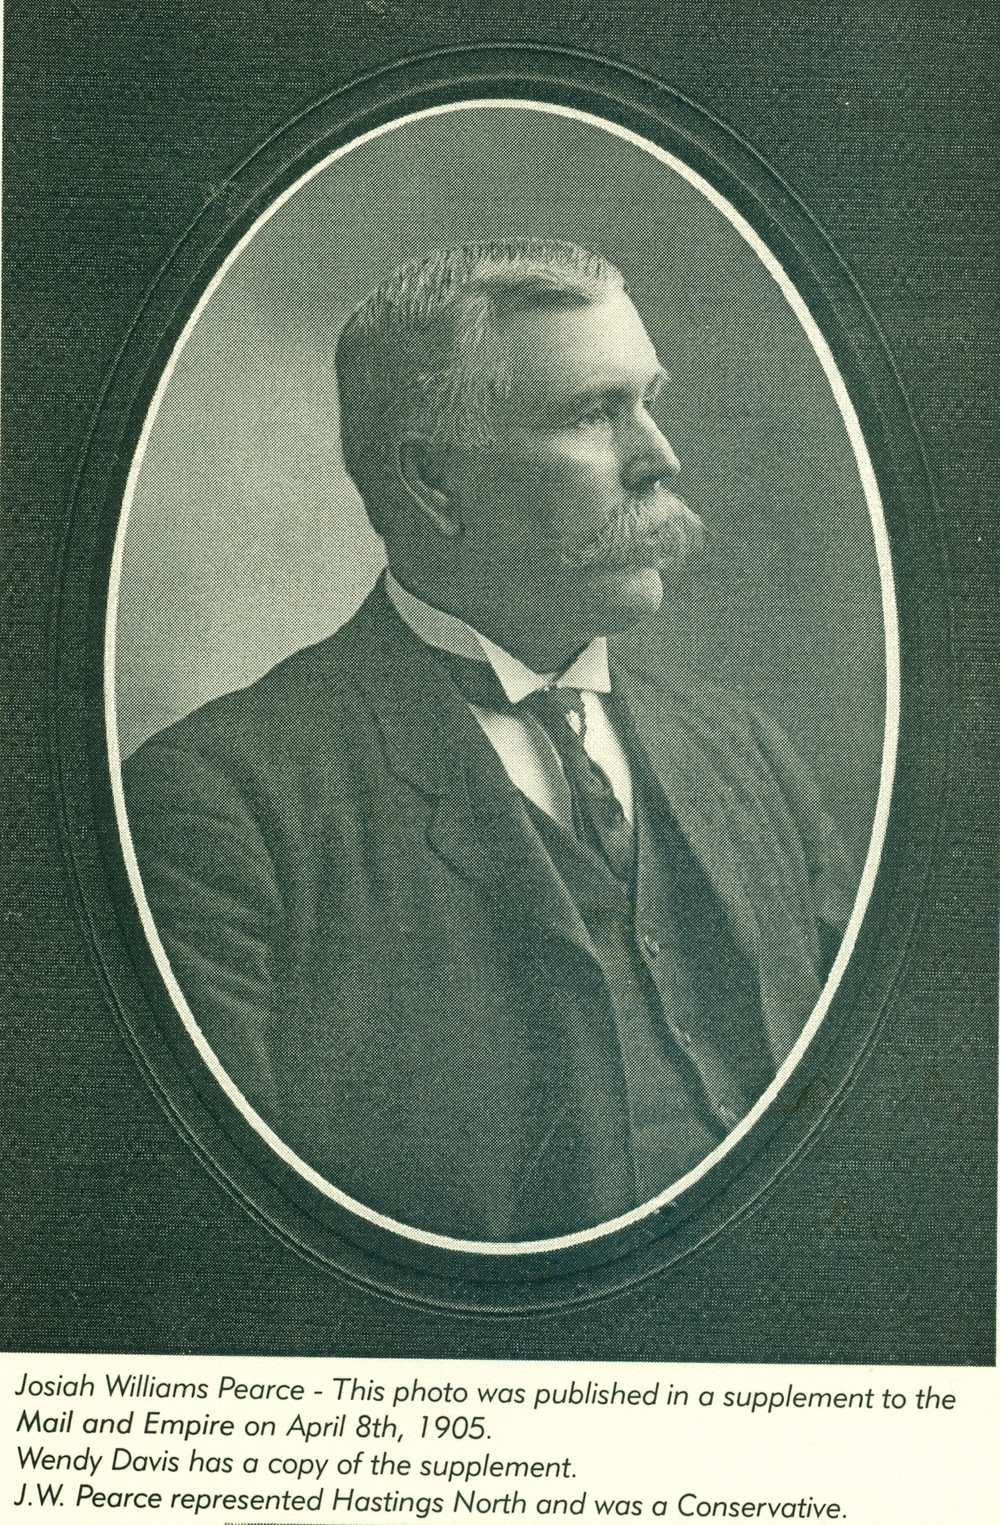 Josiah Williams Pearce, 1905.jpg